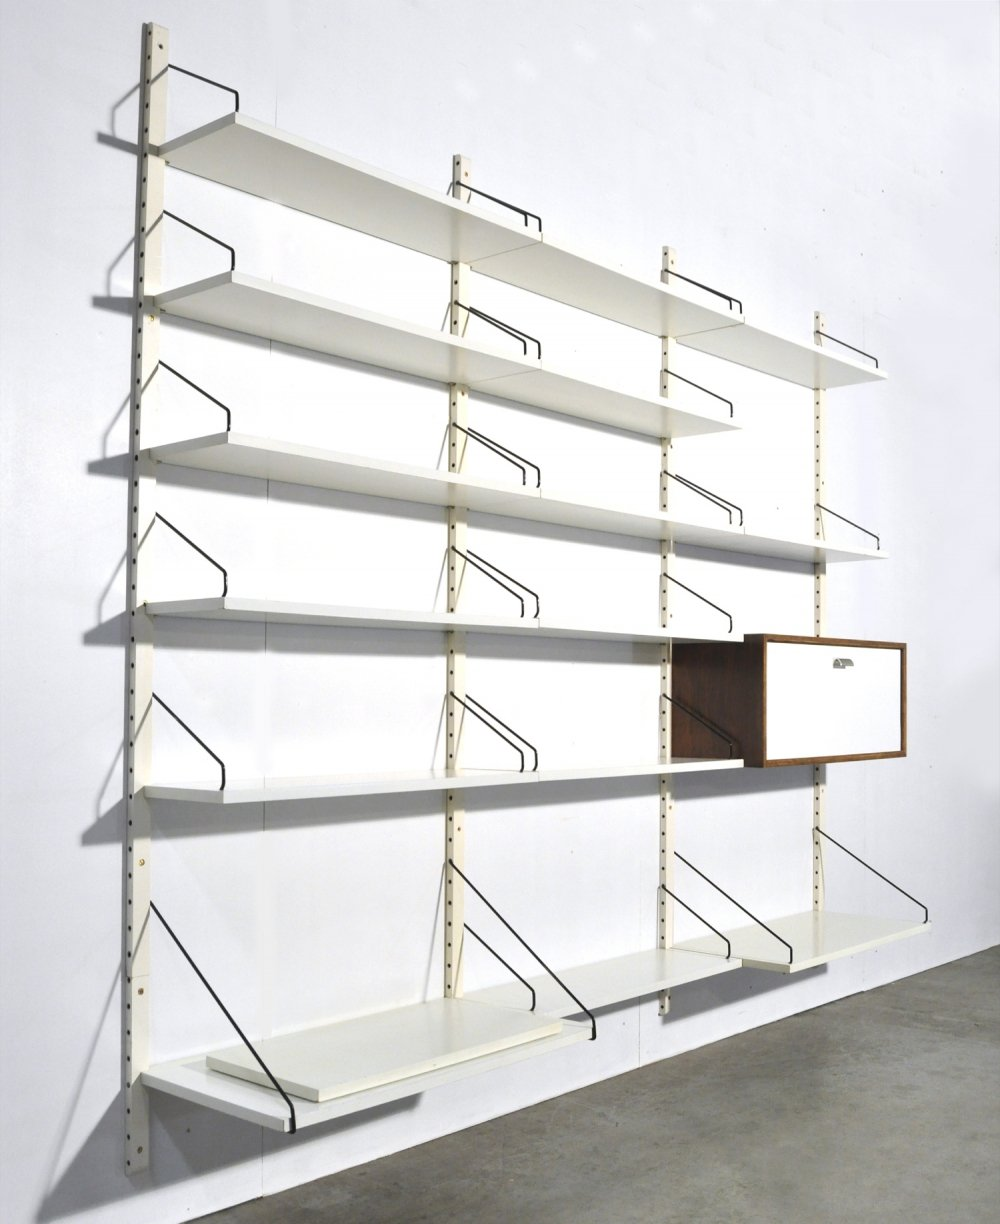 Modular Royal System wall-unit by Poul Cadovius for Cado, 1960s